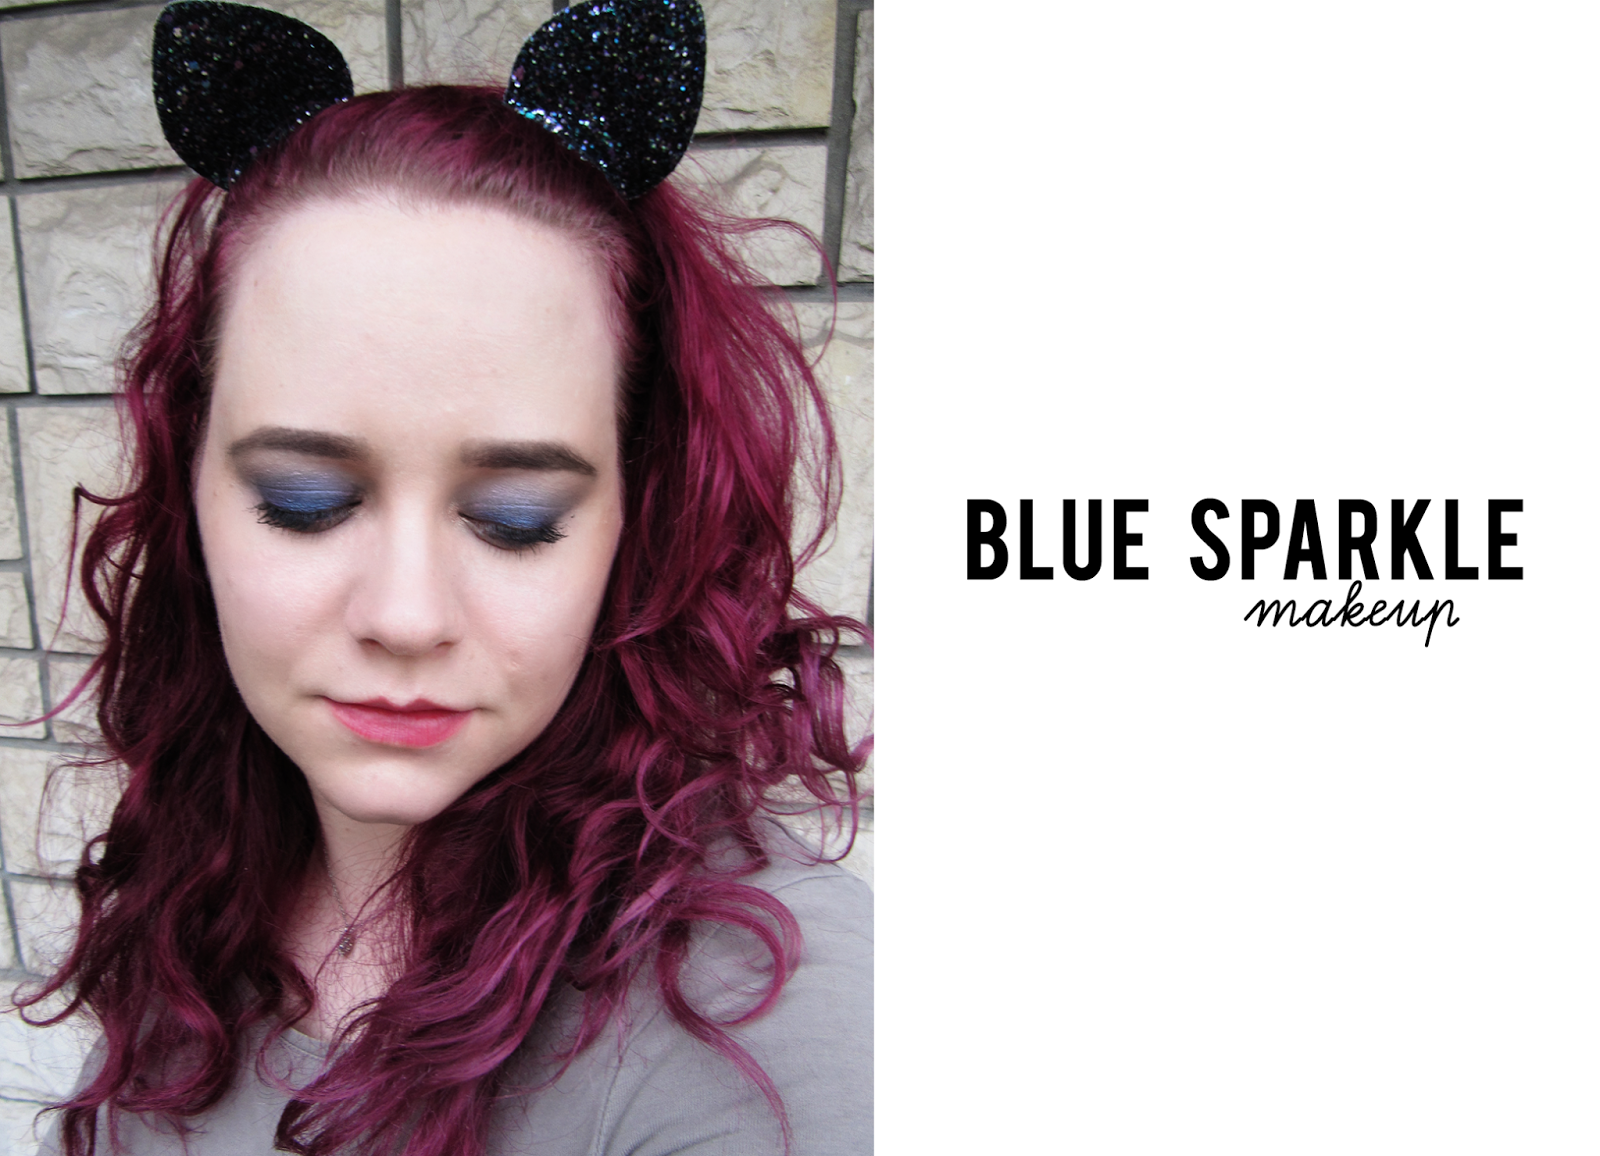 NYOL Blue Sparkle Makeup